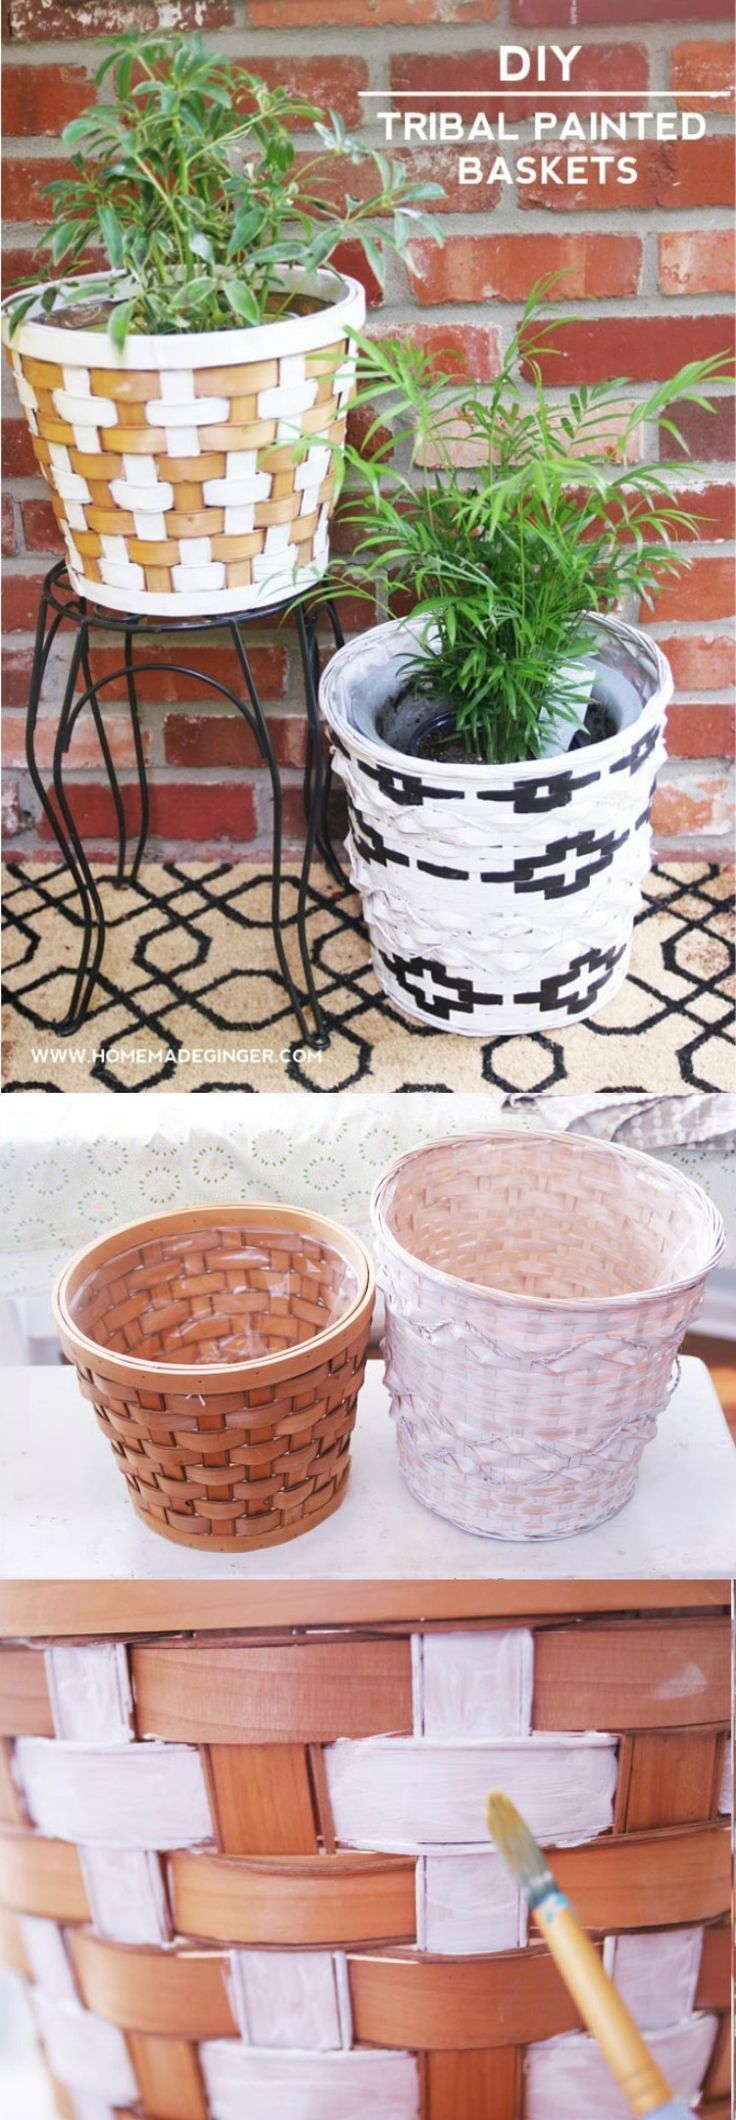 DIY Tribal Painted Baskets for Home Decor - DIY Candy